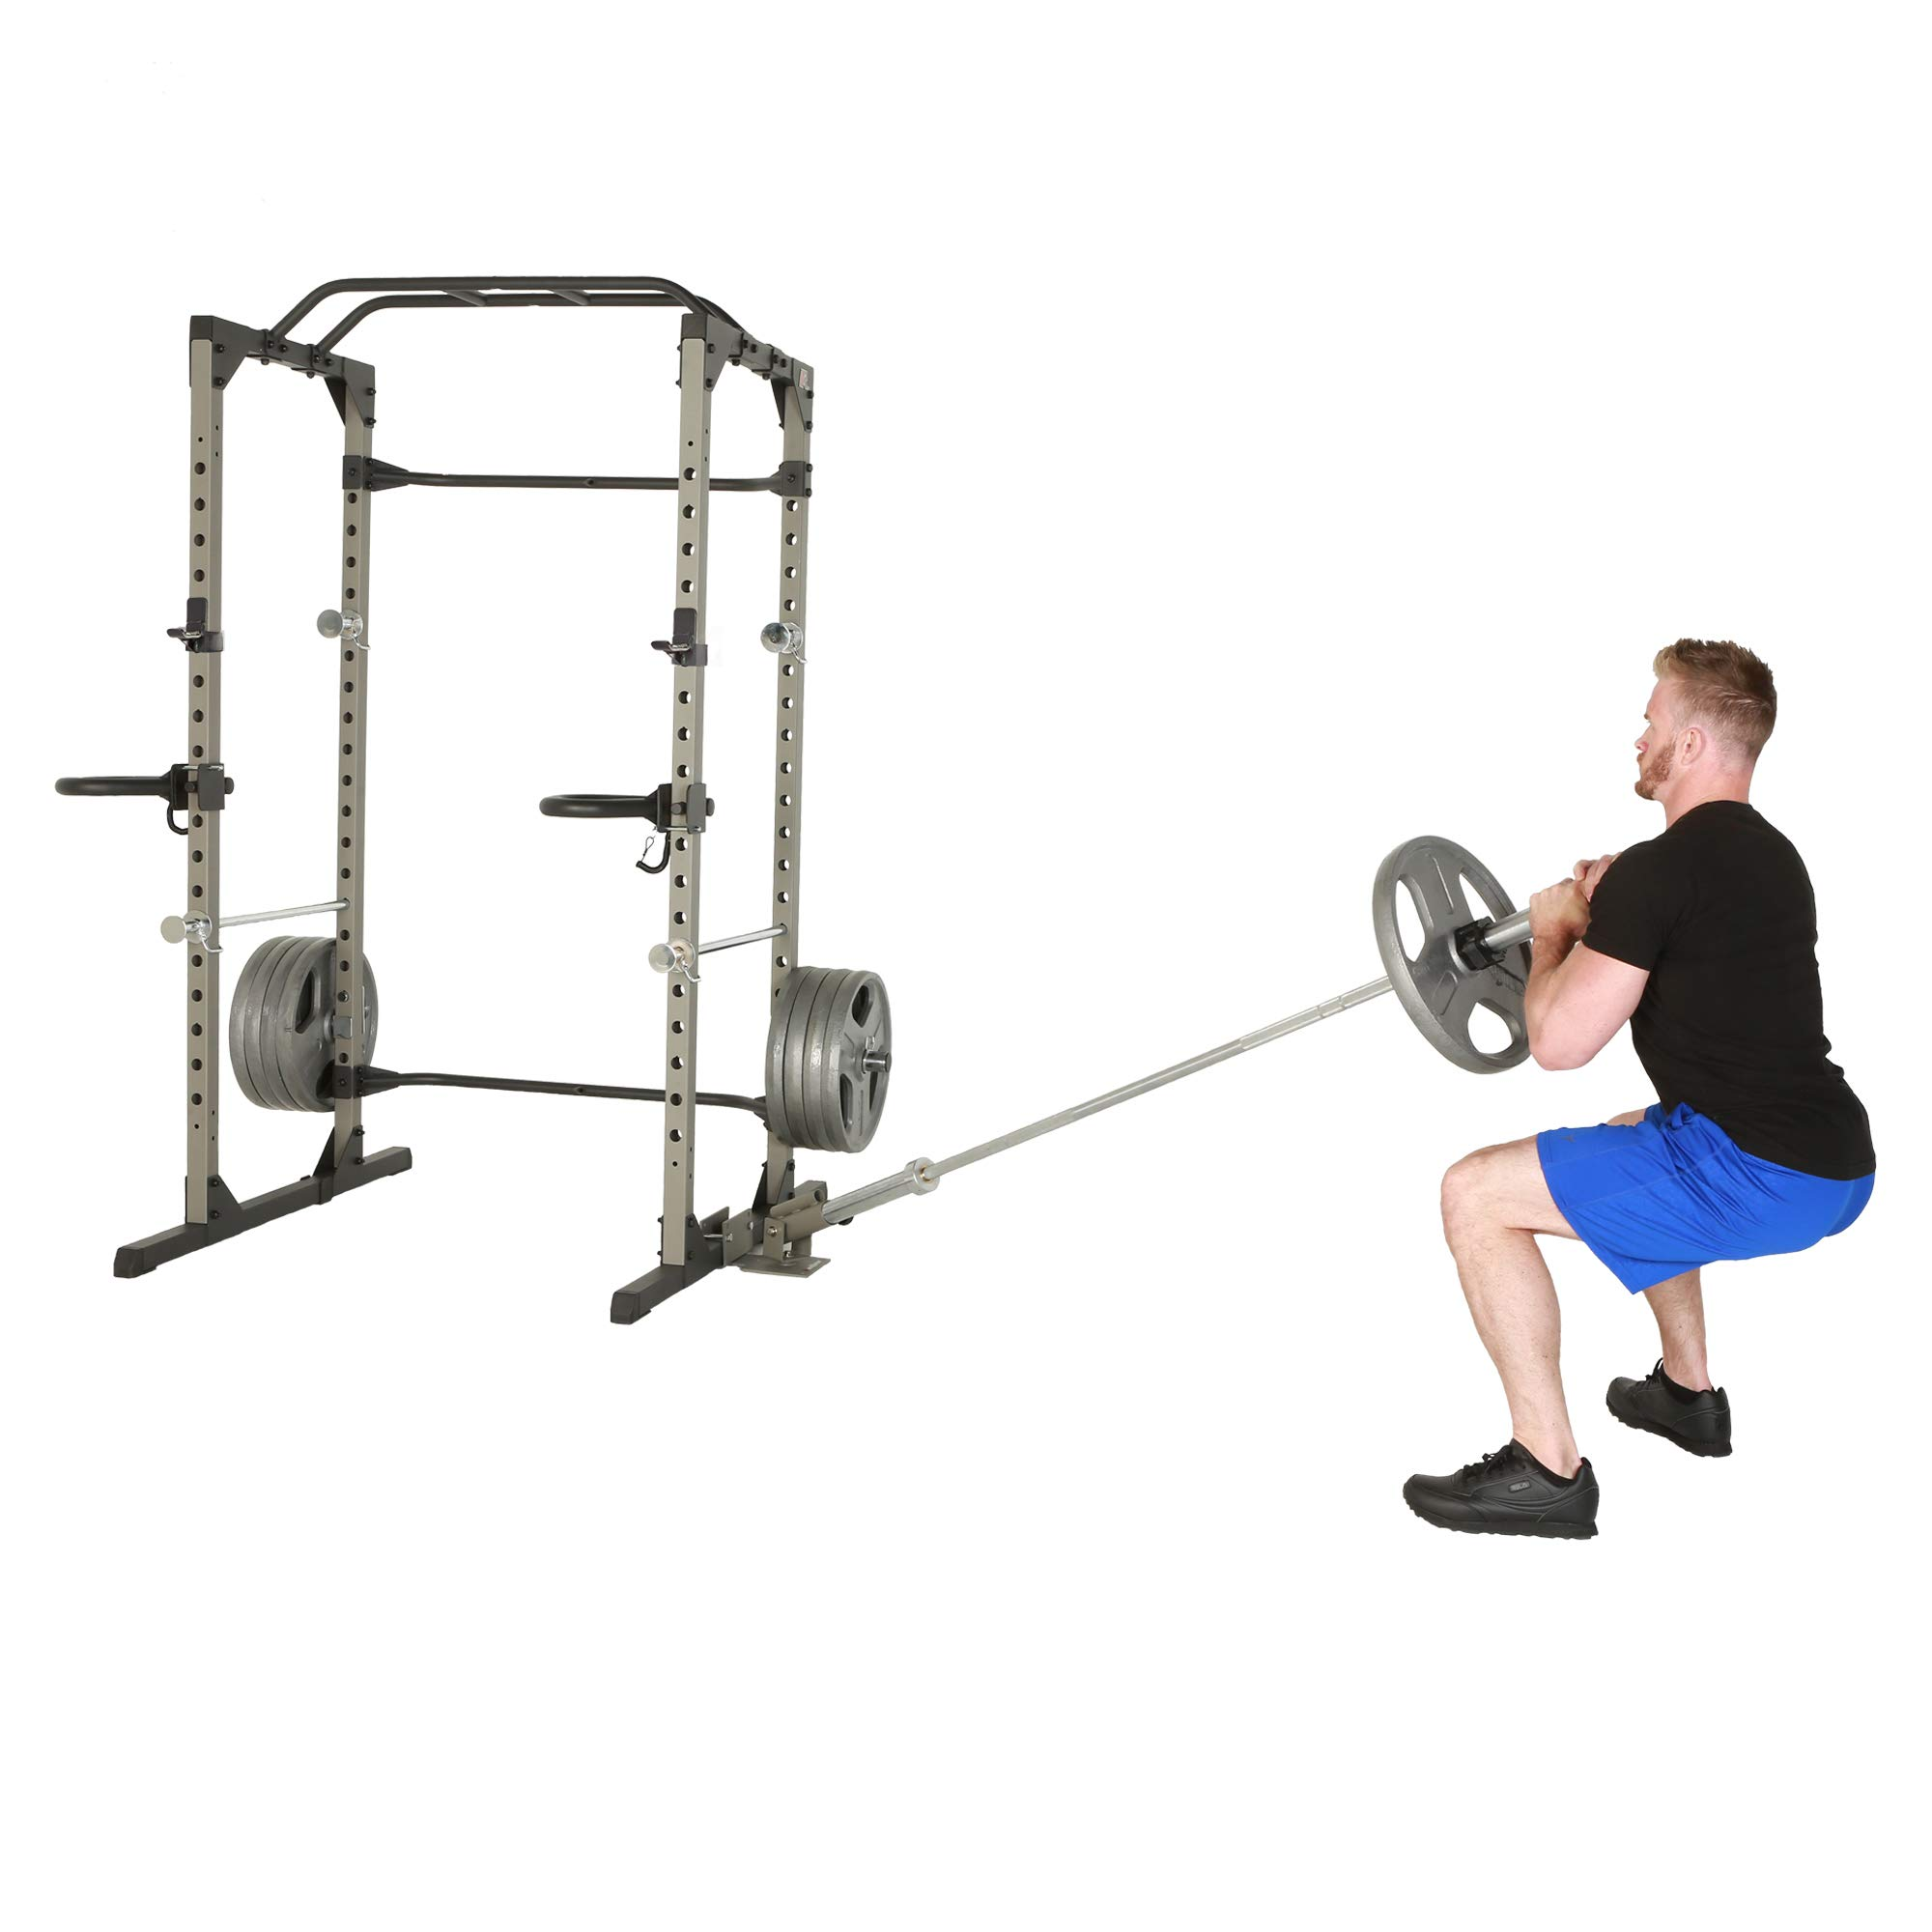 Fitness Reality 2819 Attachment Set for 2''x2'' Steel Tubing Power Cages by Fitness Reality (Image #7)